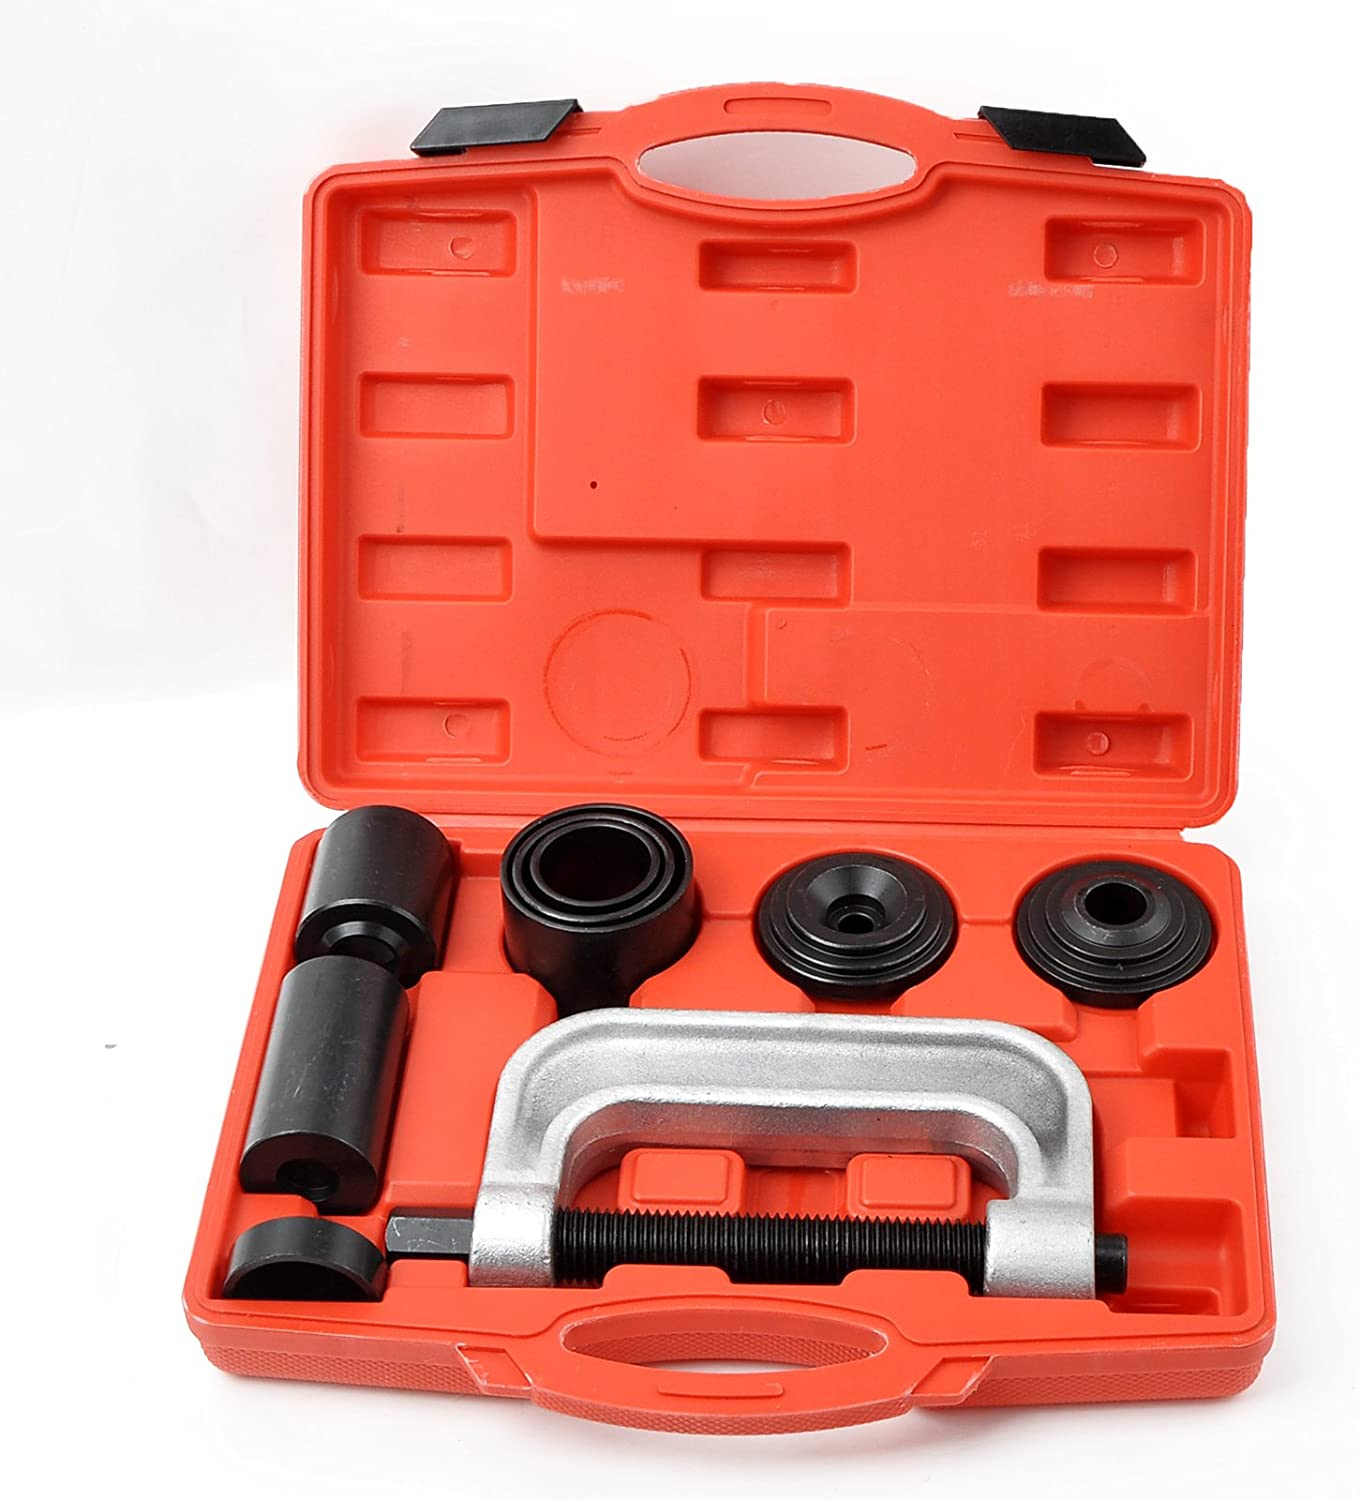 WINMAX TOOLS AUTOMOTIVE Ball Joint Service Kit Tool Set (4 in 1) 2wd & 4wd Vehicles Remover Install with 4-Wheel Drive Adaptors